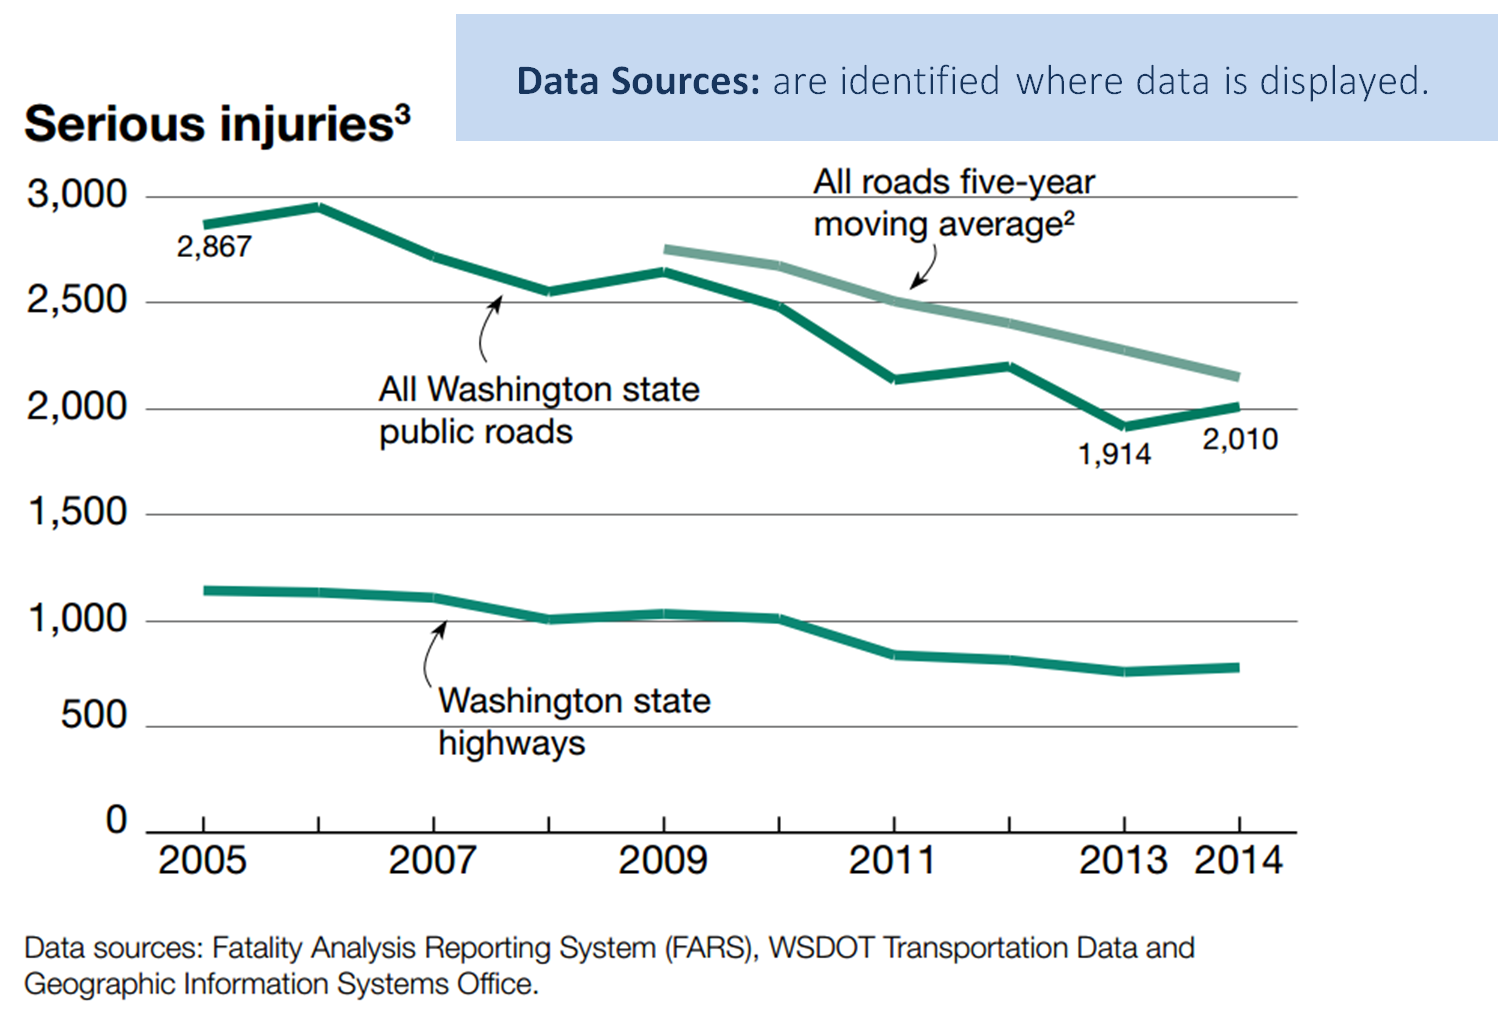 Data sources: are identified where data is displayed. Graph of serious injuries on all Washington state roads, only highways, and all roads five-year moving average. Data sources listed at bottom: Fatality Analysis Reporting System (FARS), WSDOT Transportation Data and Geographic Information Systems Office.